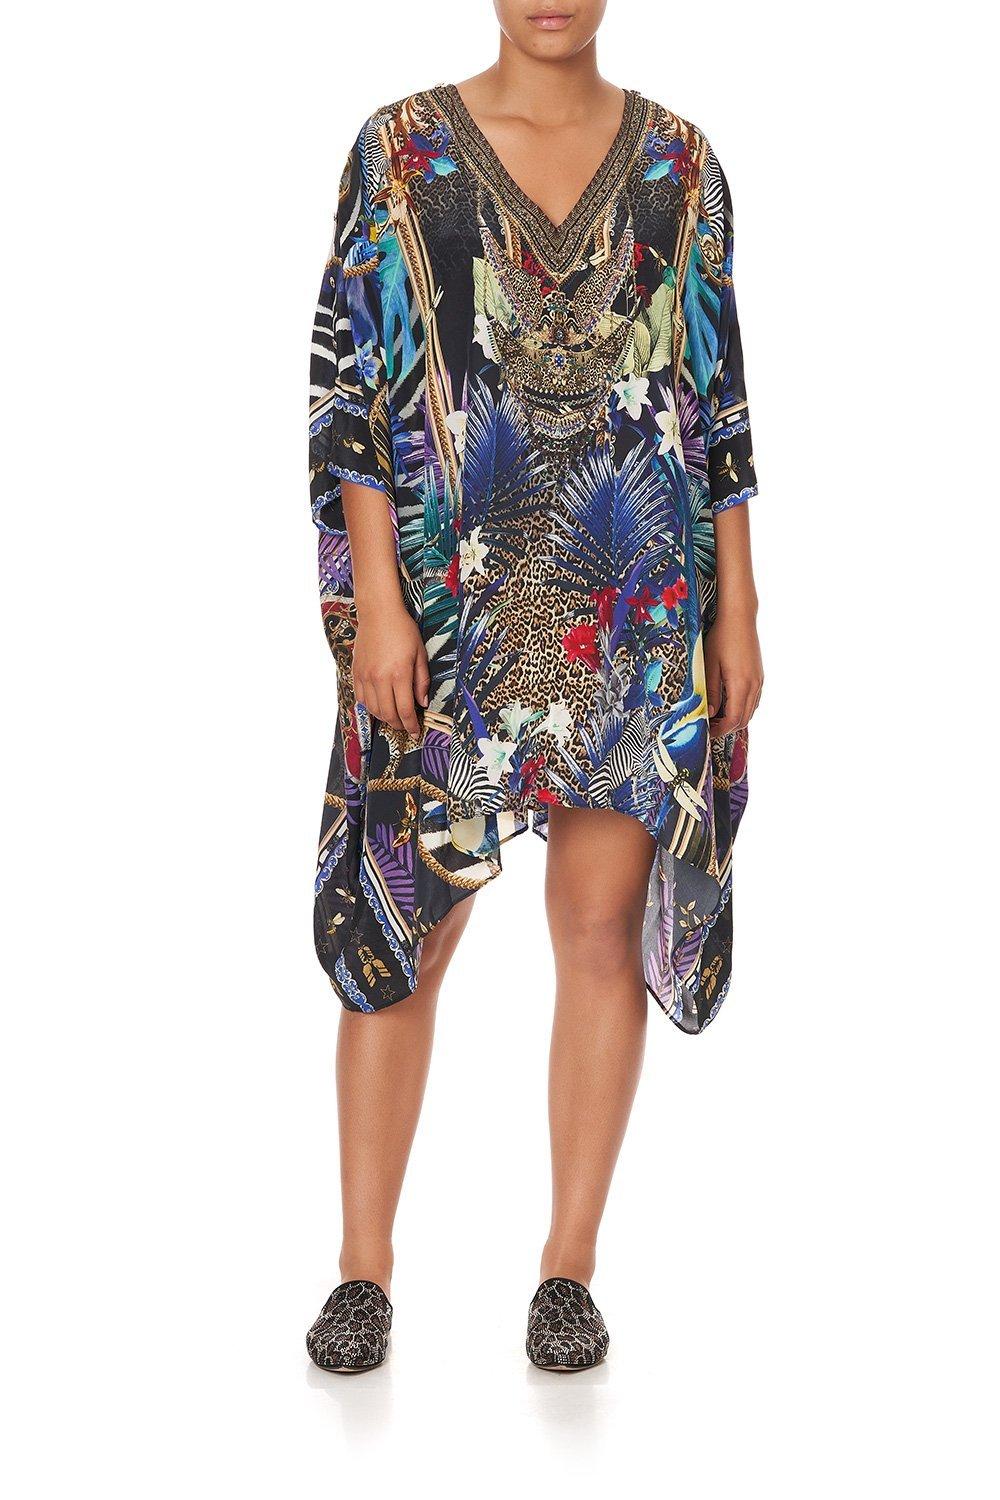 KAFTAN WITH BUTTON UP SLEEVES RAINBOW ROOM